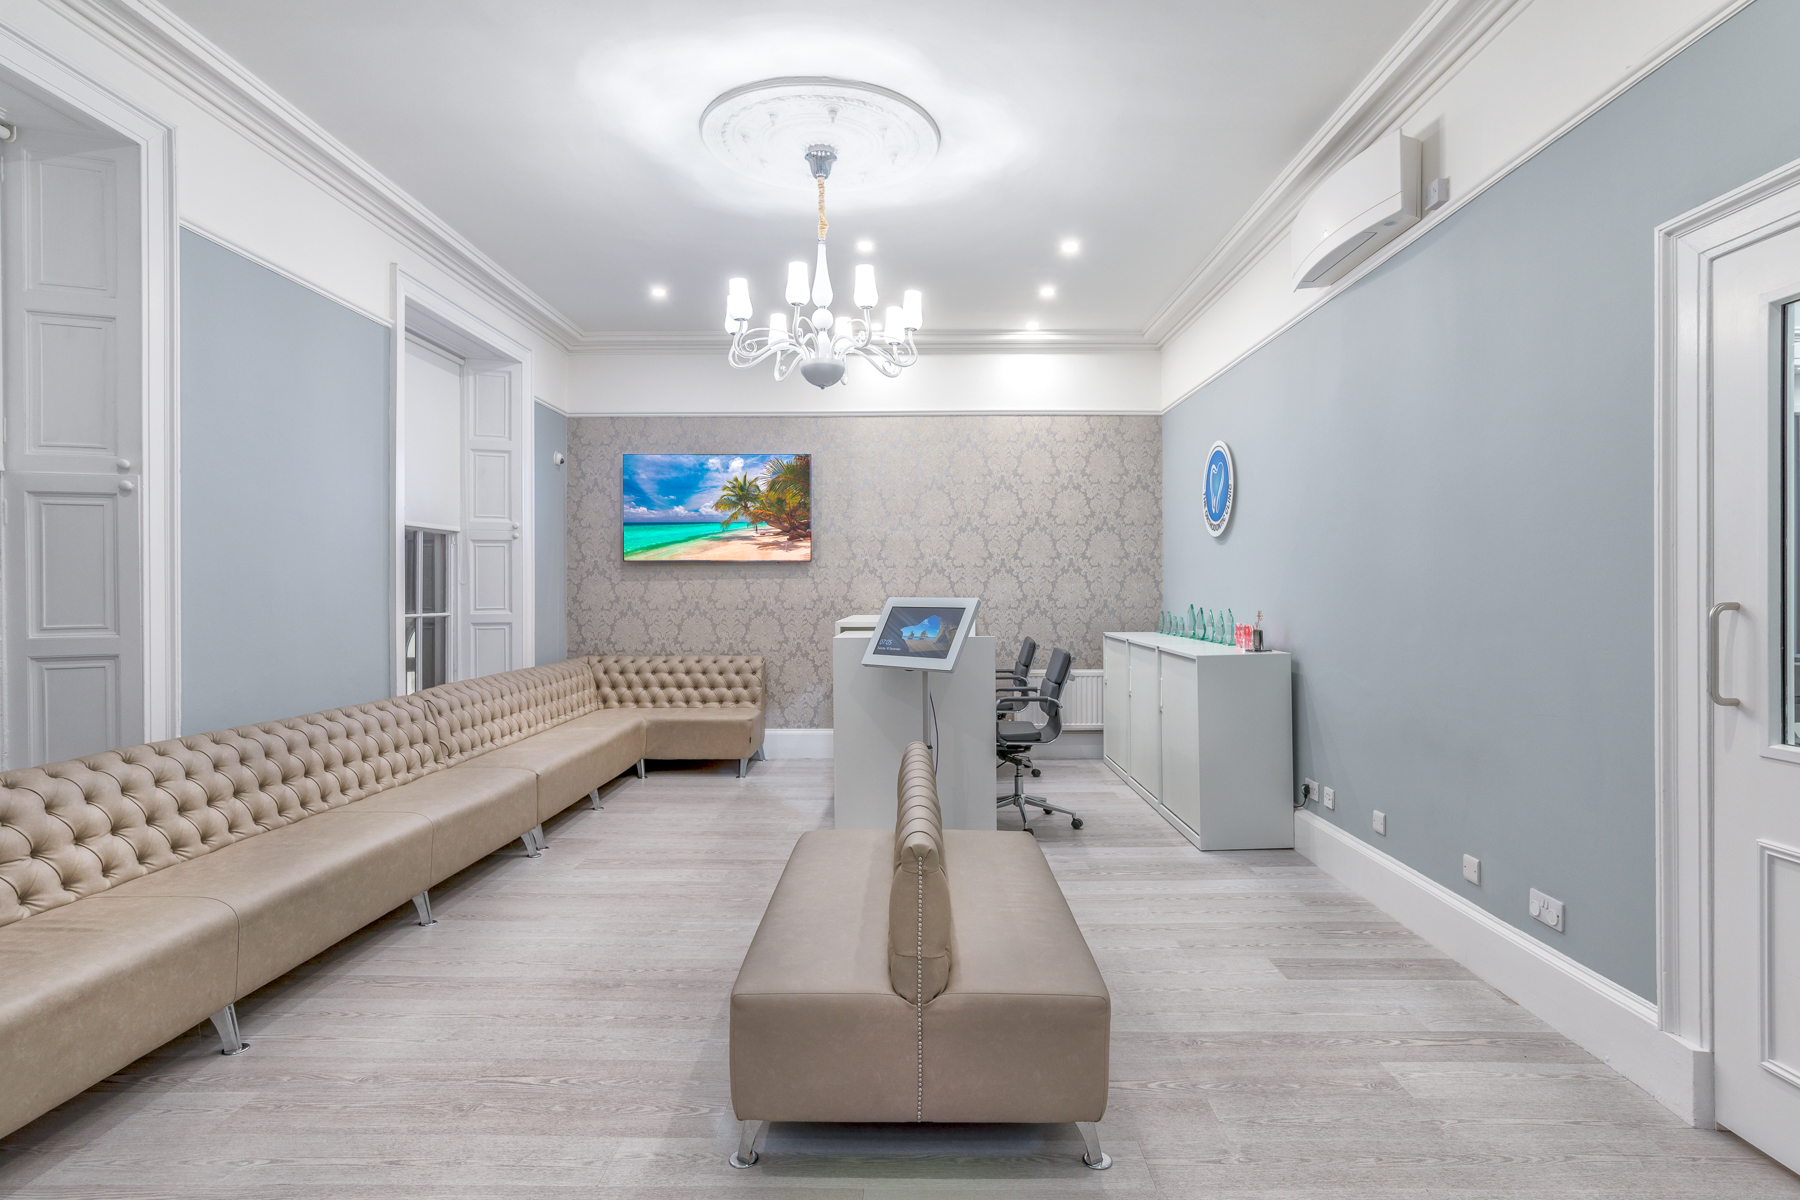 Orthodontic Clinic.NHPhoto.12.18-1.jpg